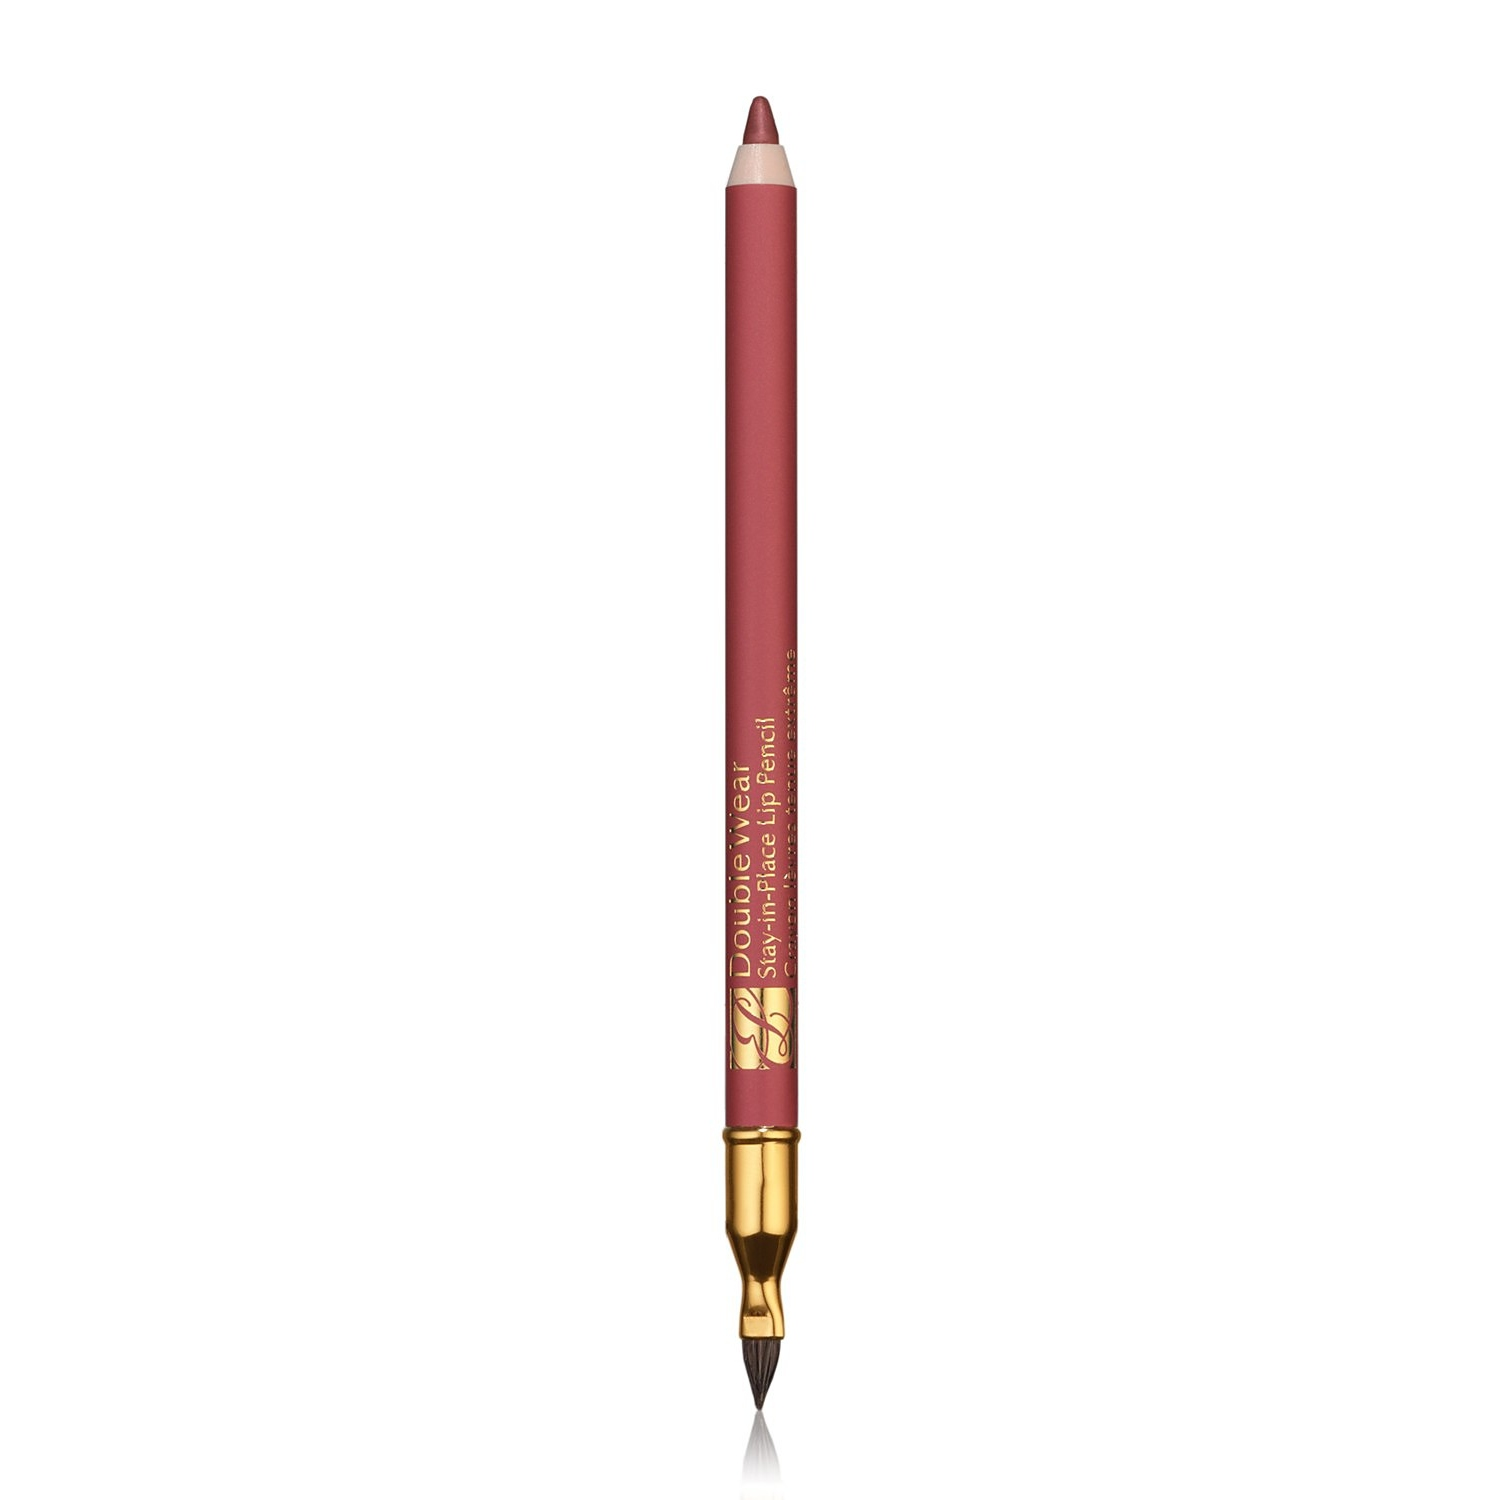 Estee Lauder Double Wear Stay In Place Lip Pencil matita labbra Mauve